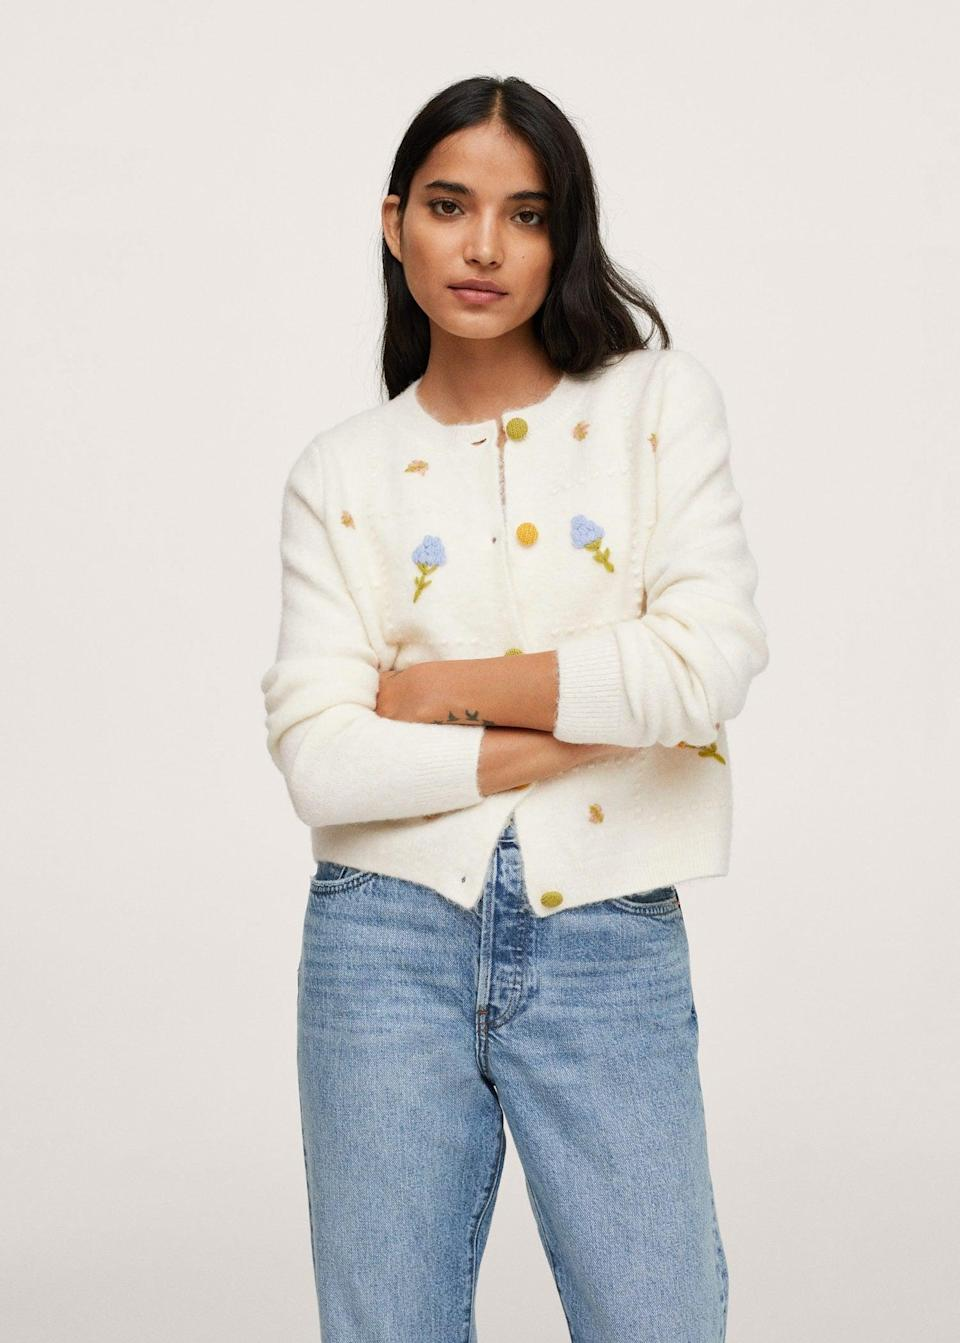 <p>This <span>Mango Flowers Knit Cardigan</span> ($56, originally $80) looks so charming and fun. If you're still iffy about adding color to your daily rotation, it's a fun way to start.</p>